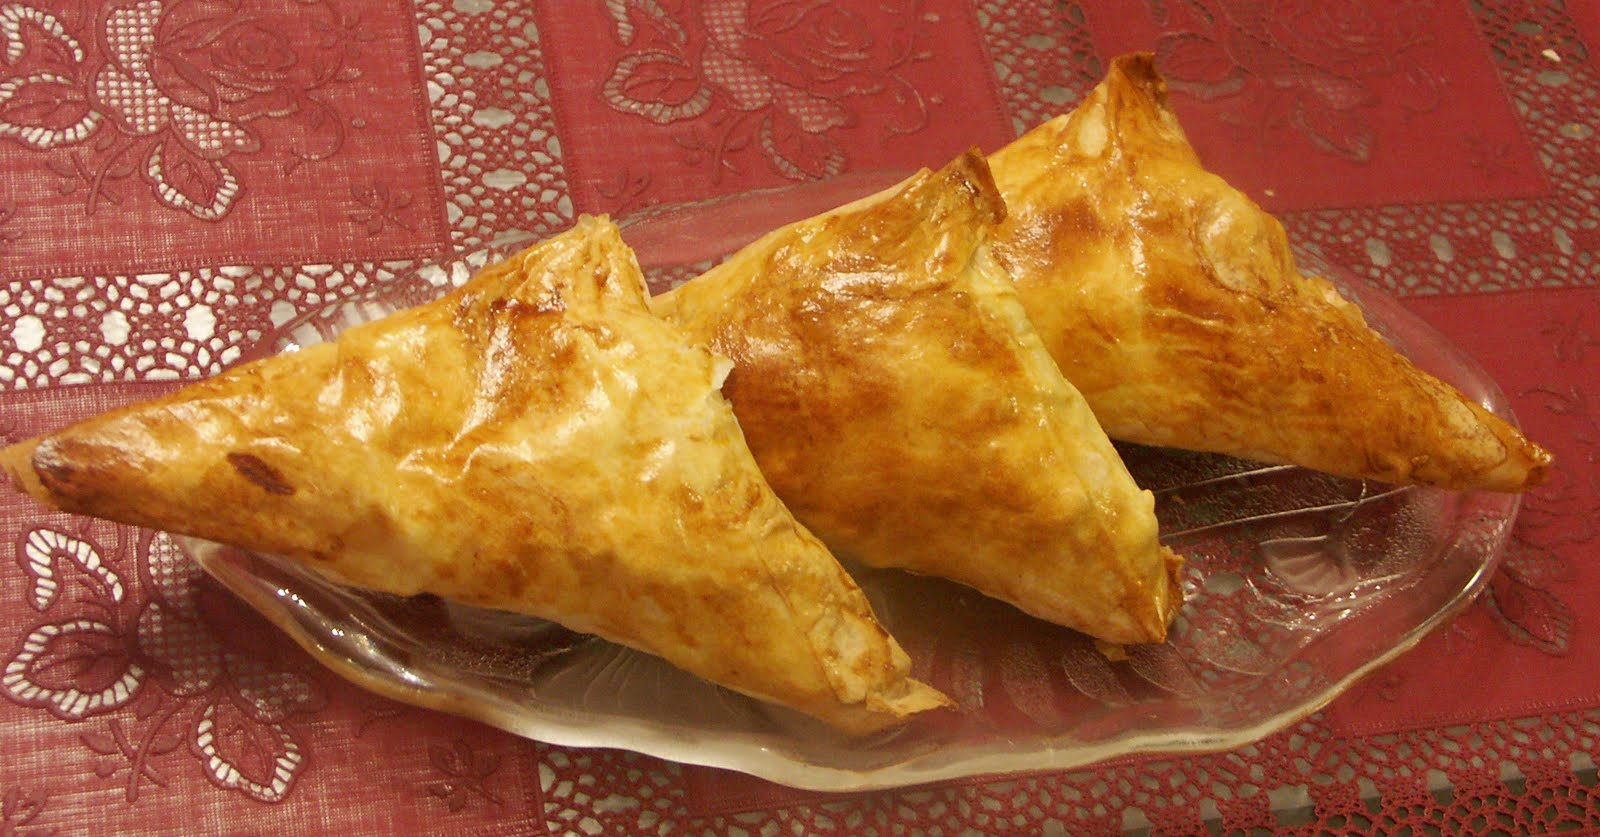 Apple Turnovers Using Phyllo Dough